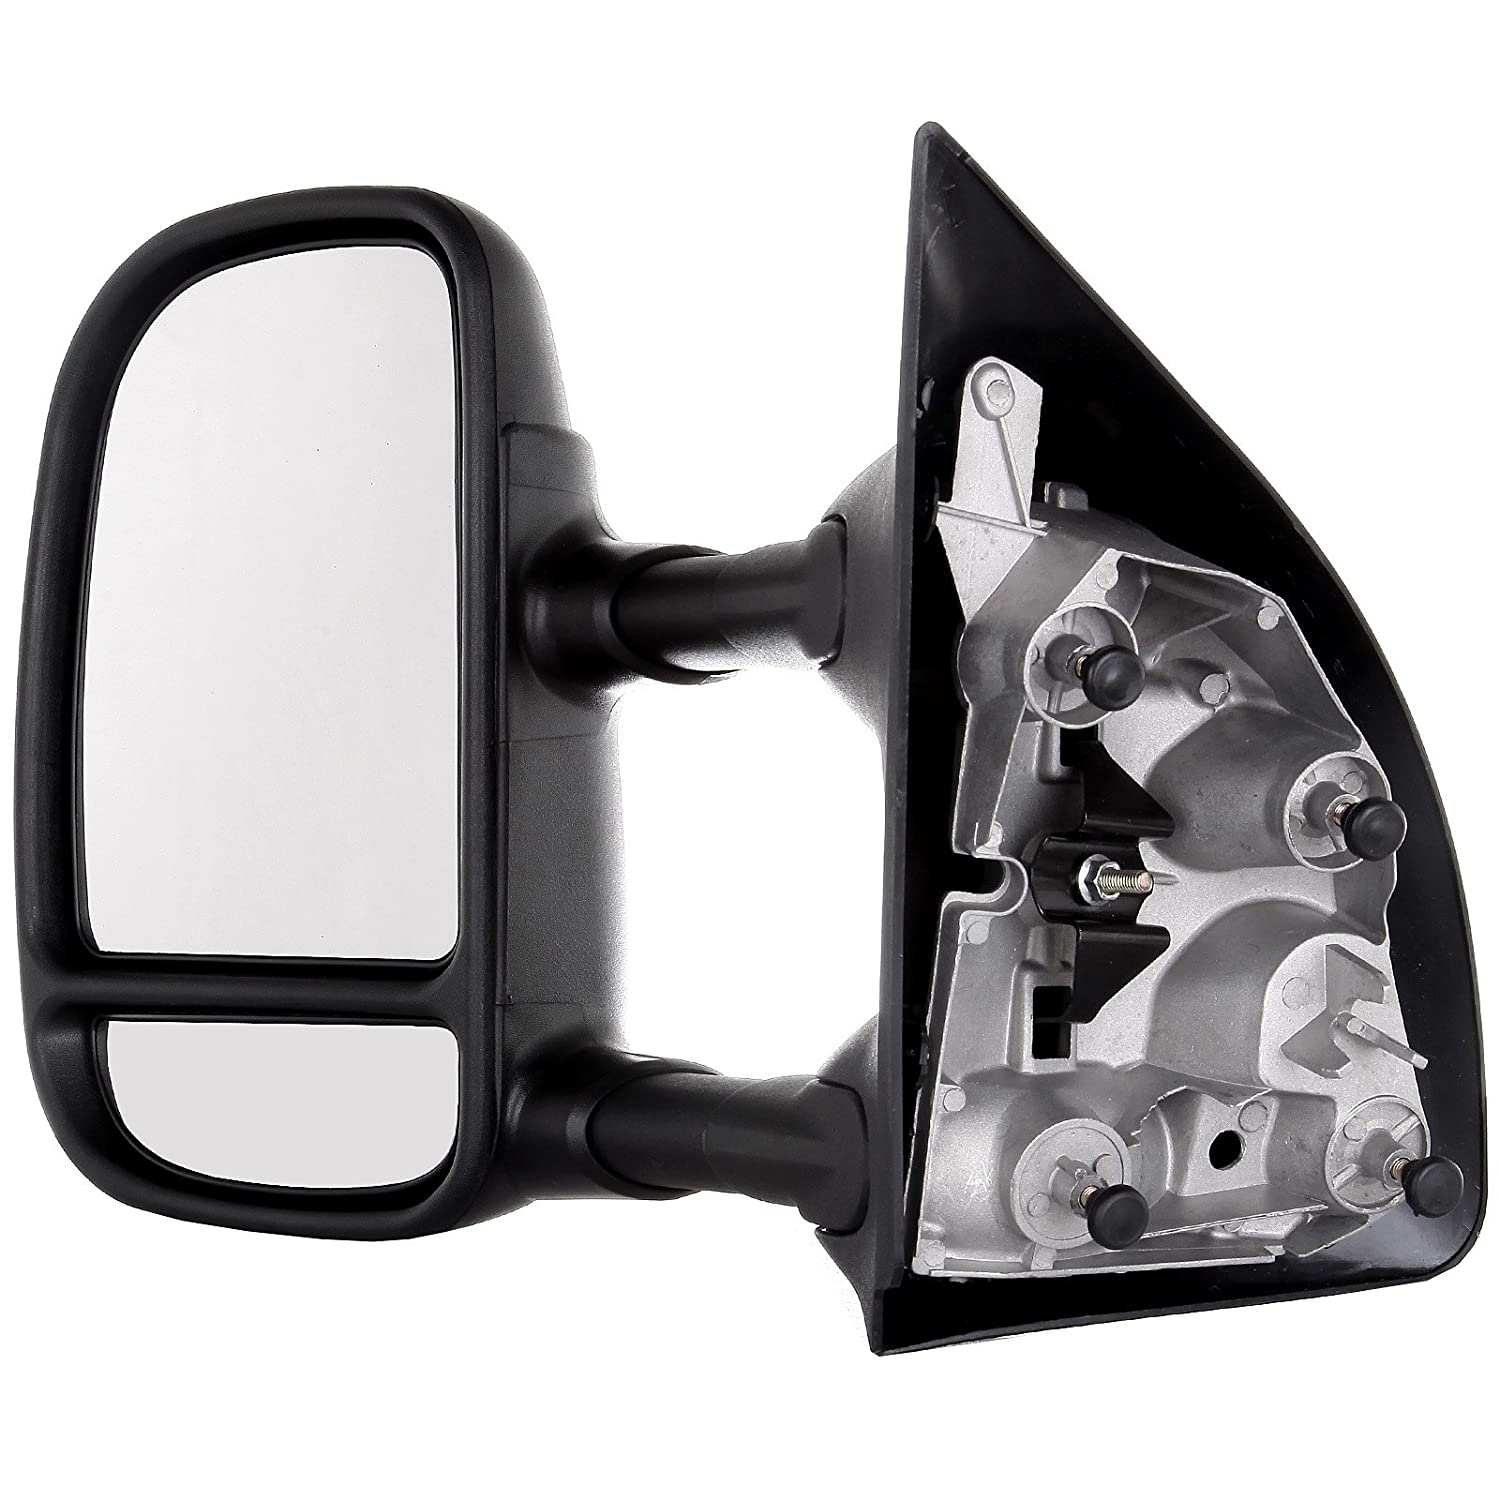 ECCPP Towing Mirrors Replacement fit for 99-07 Ford F250 F350 F450 F550 Power Heated Telescopic Black View Mirror Pair Set Left Driver Right Passenger Side 050261-5211-1620456